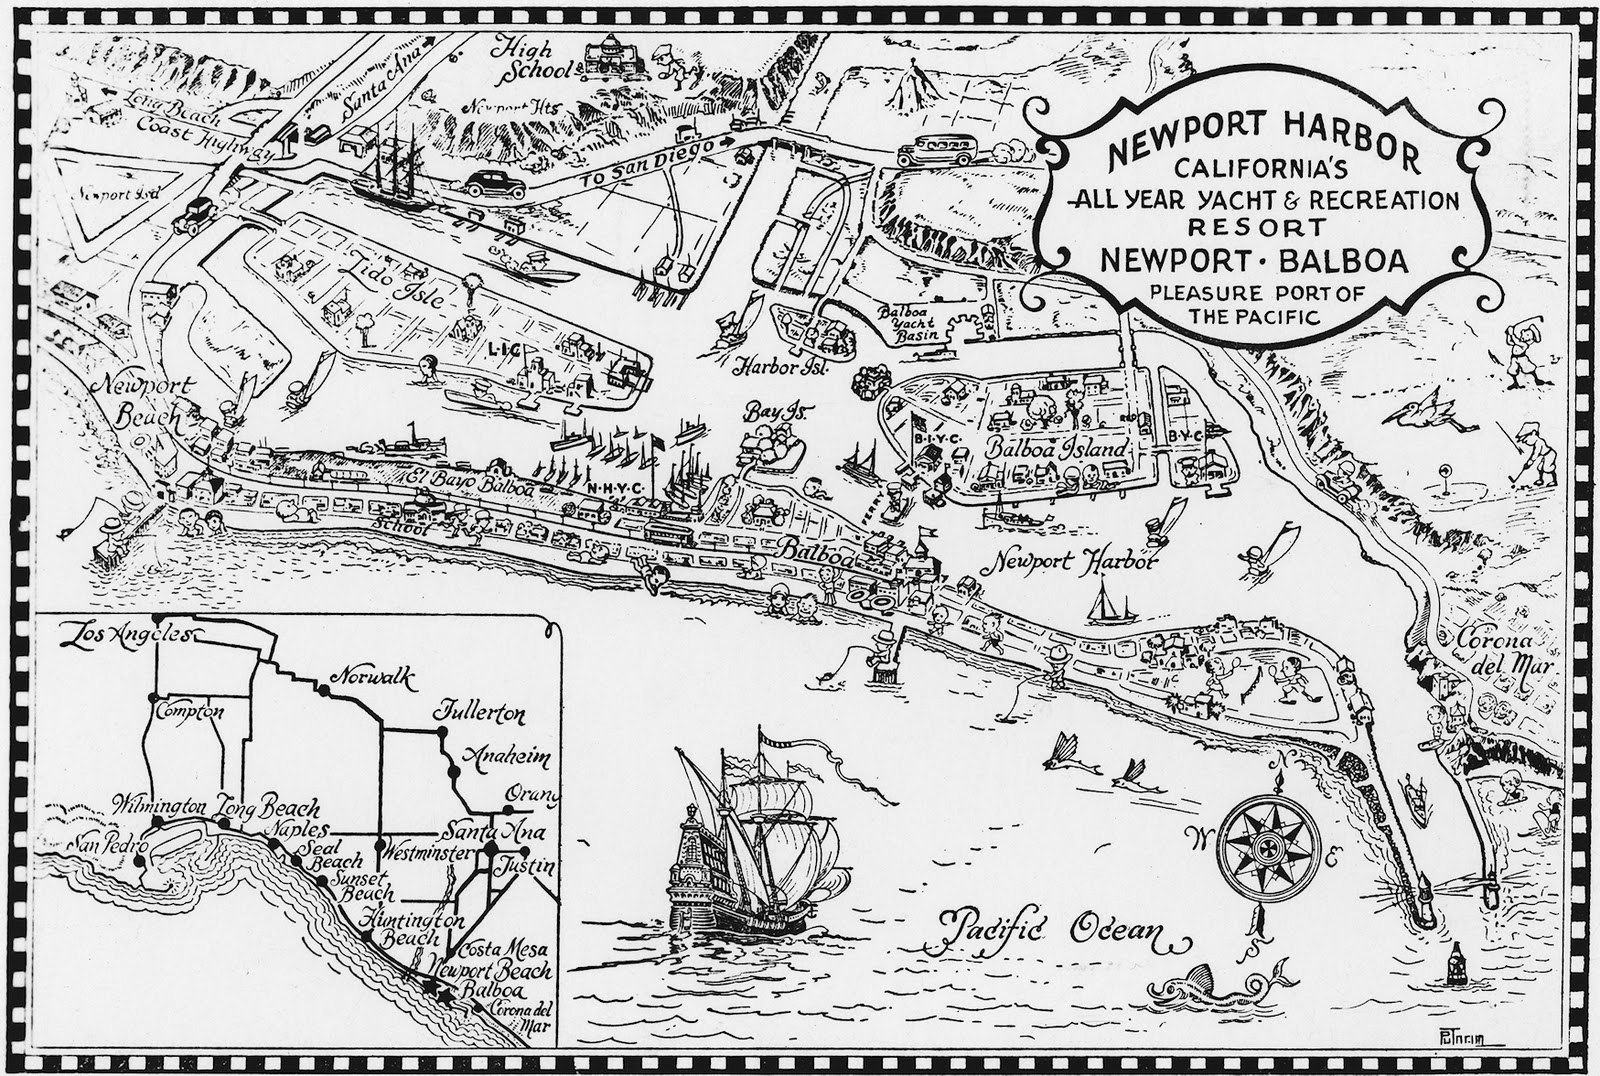 OC History Roundup Newport Harbor And Claude G Putnam - Los angeles gas map